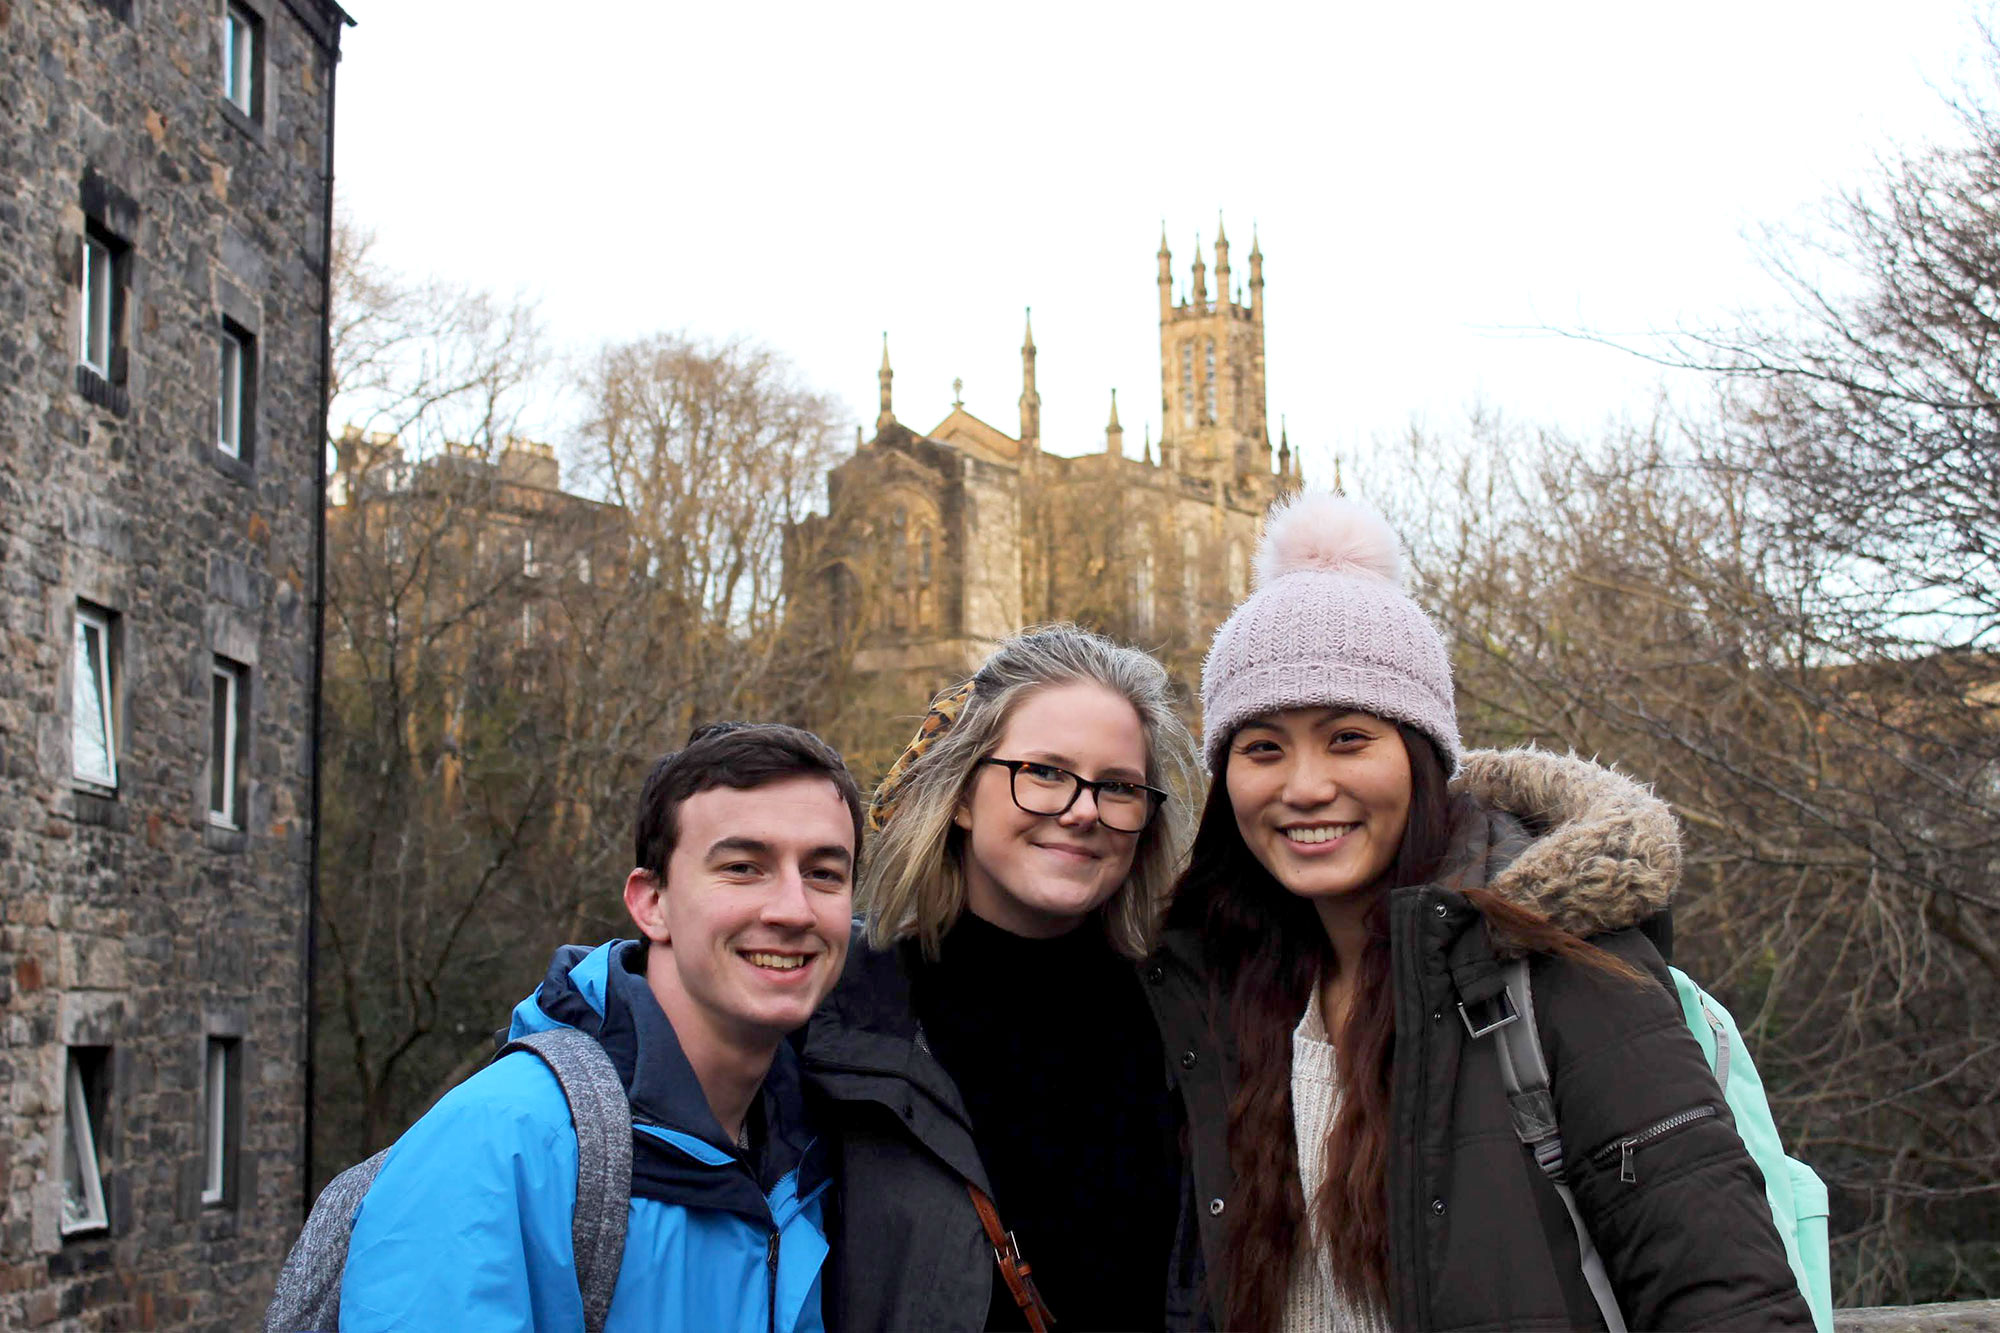 Christine Choy smiling at the camera with two friends with stone church and buildings in the background, Glasgow